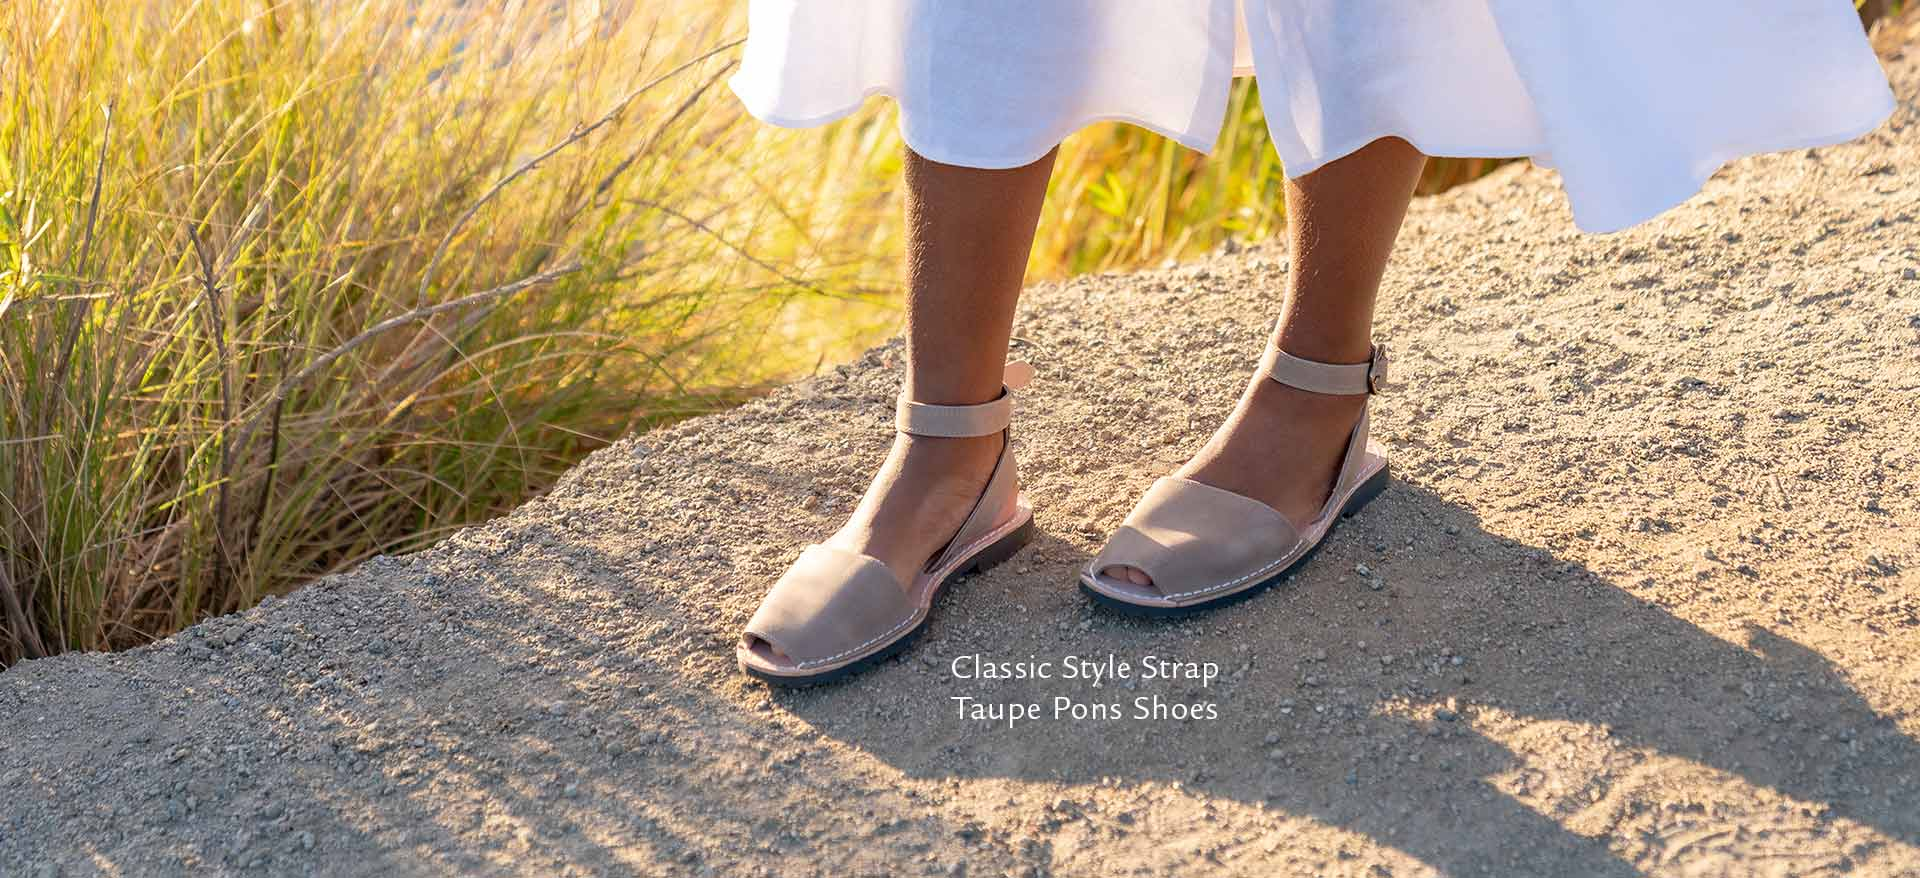 Classic Style Strap Taupe Pons Shoes